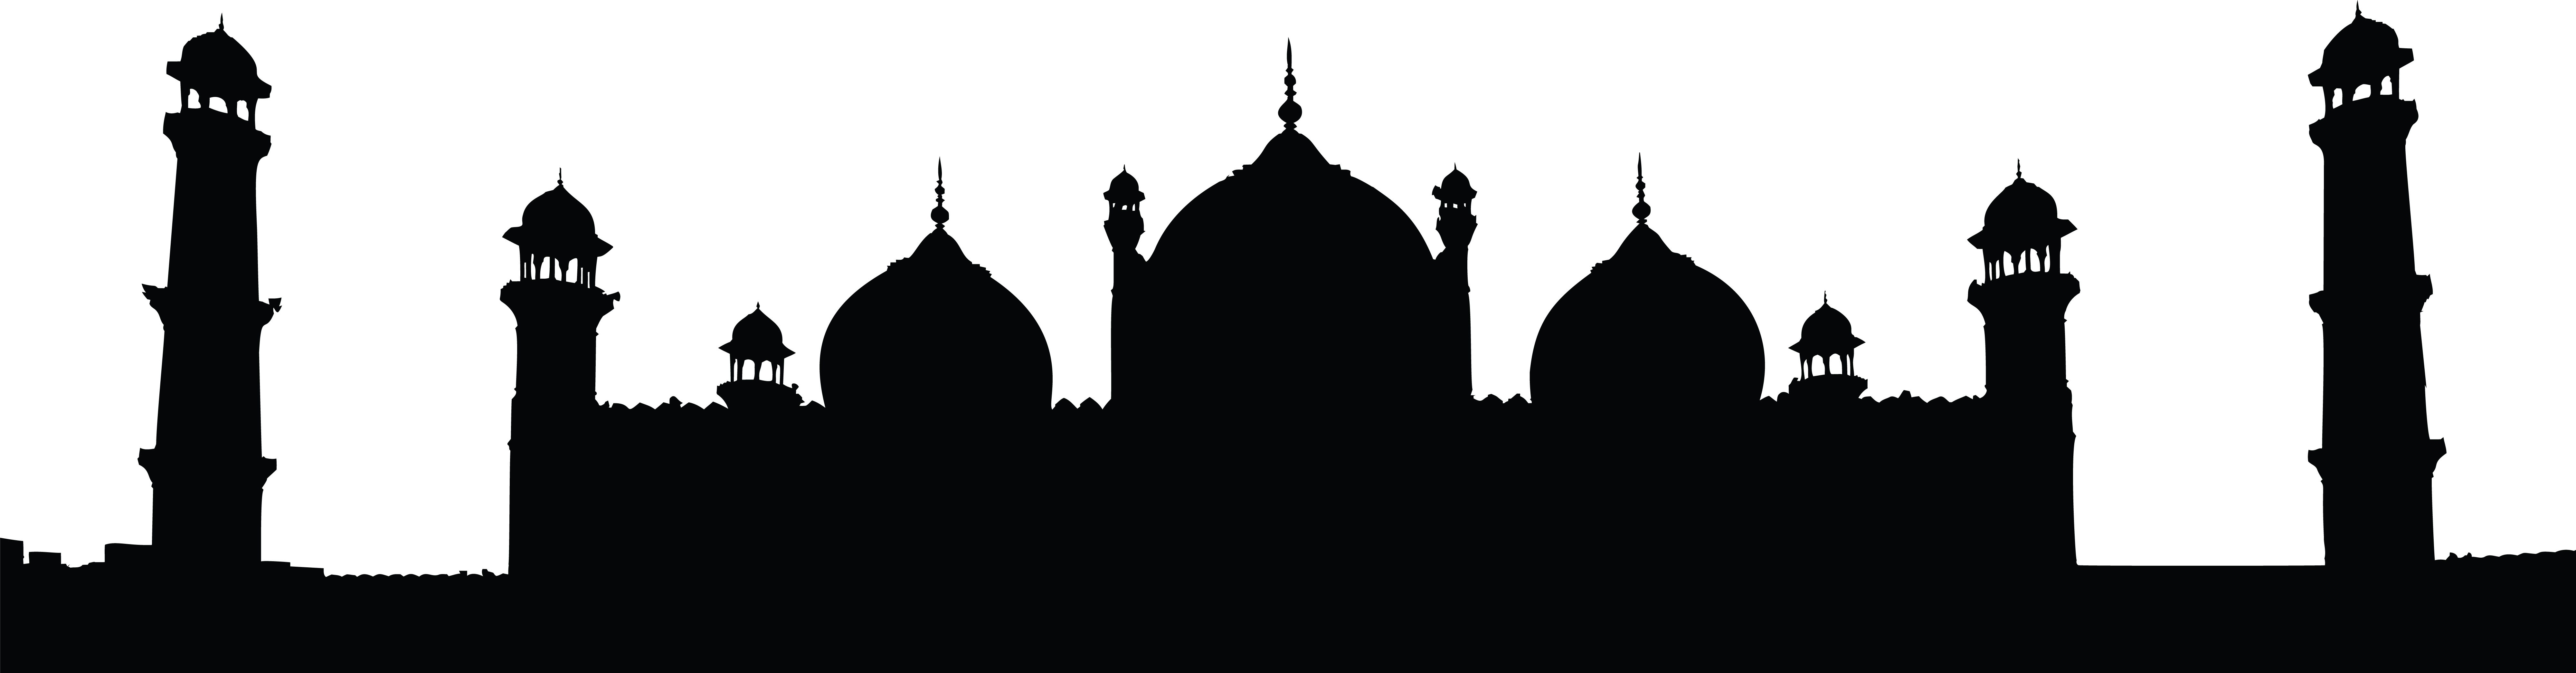 8000x2089 Clipart Of A Badshahi Mosque Lahore Pakistan Black And White